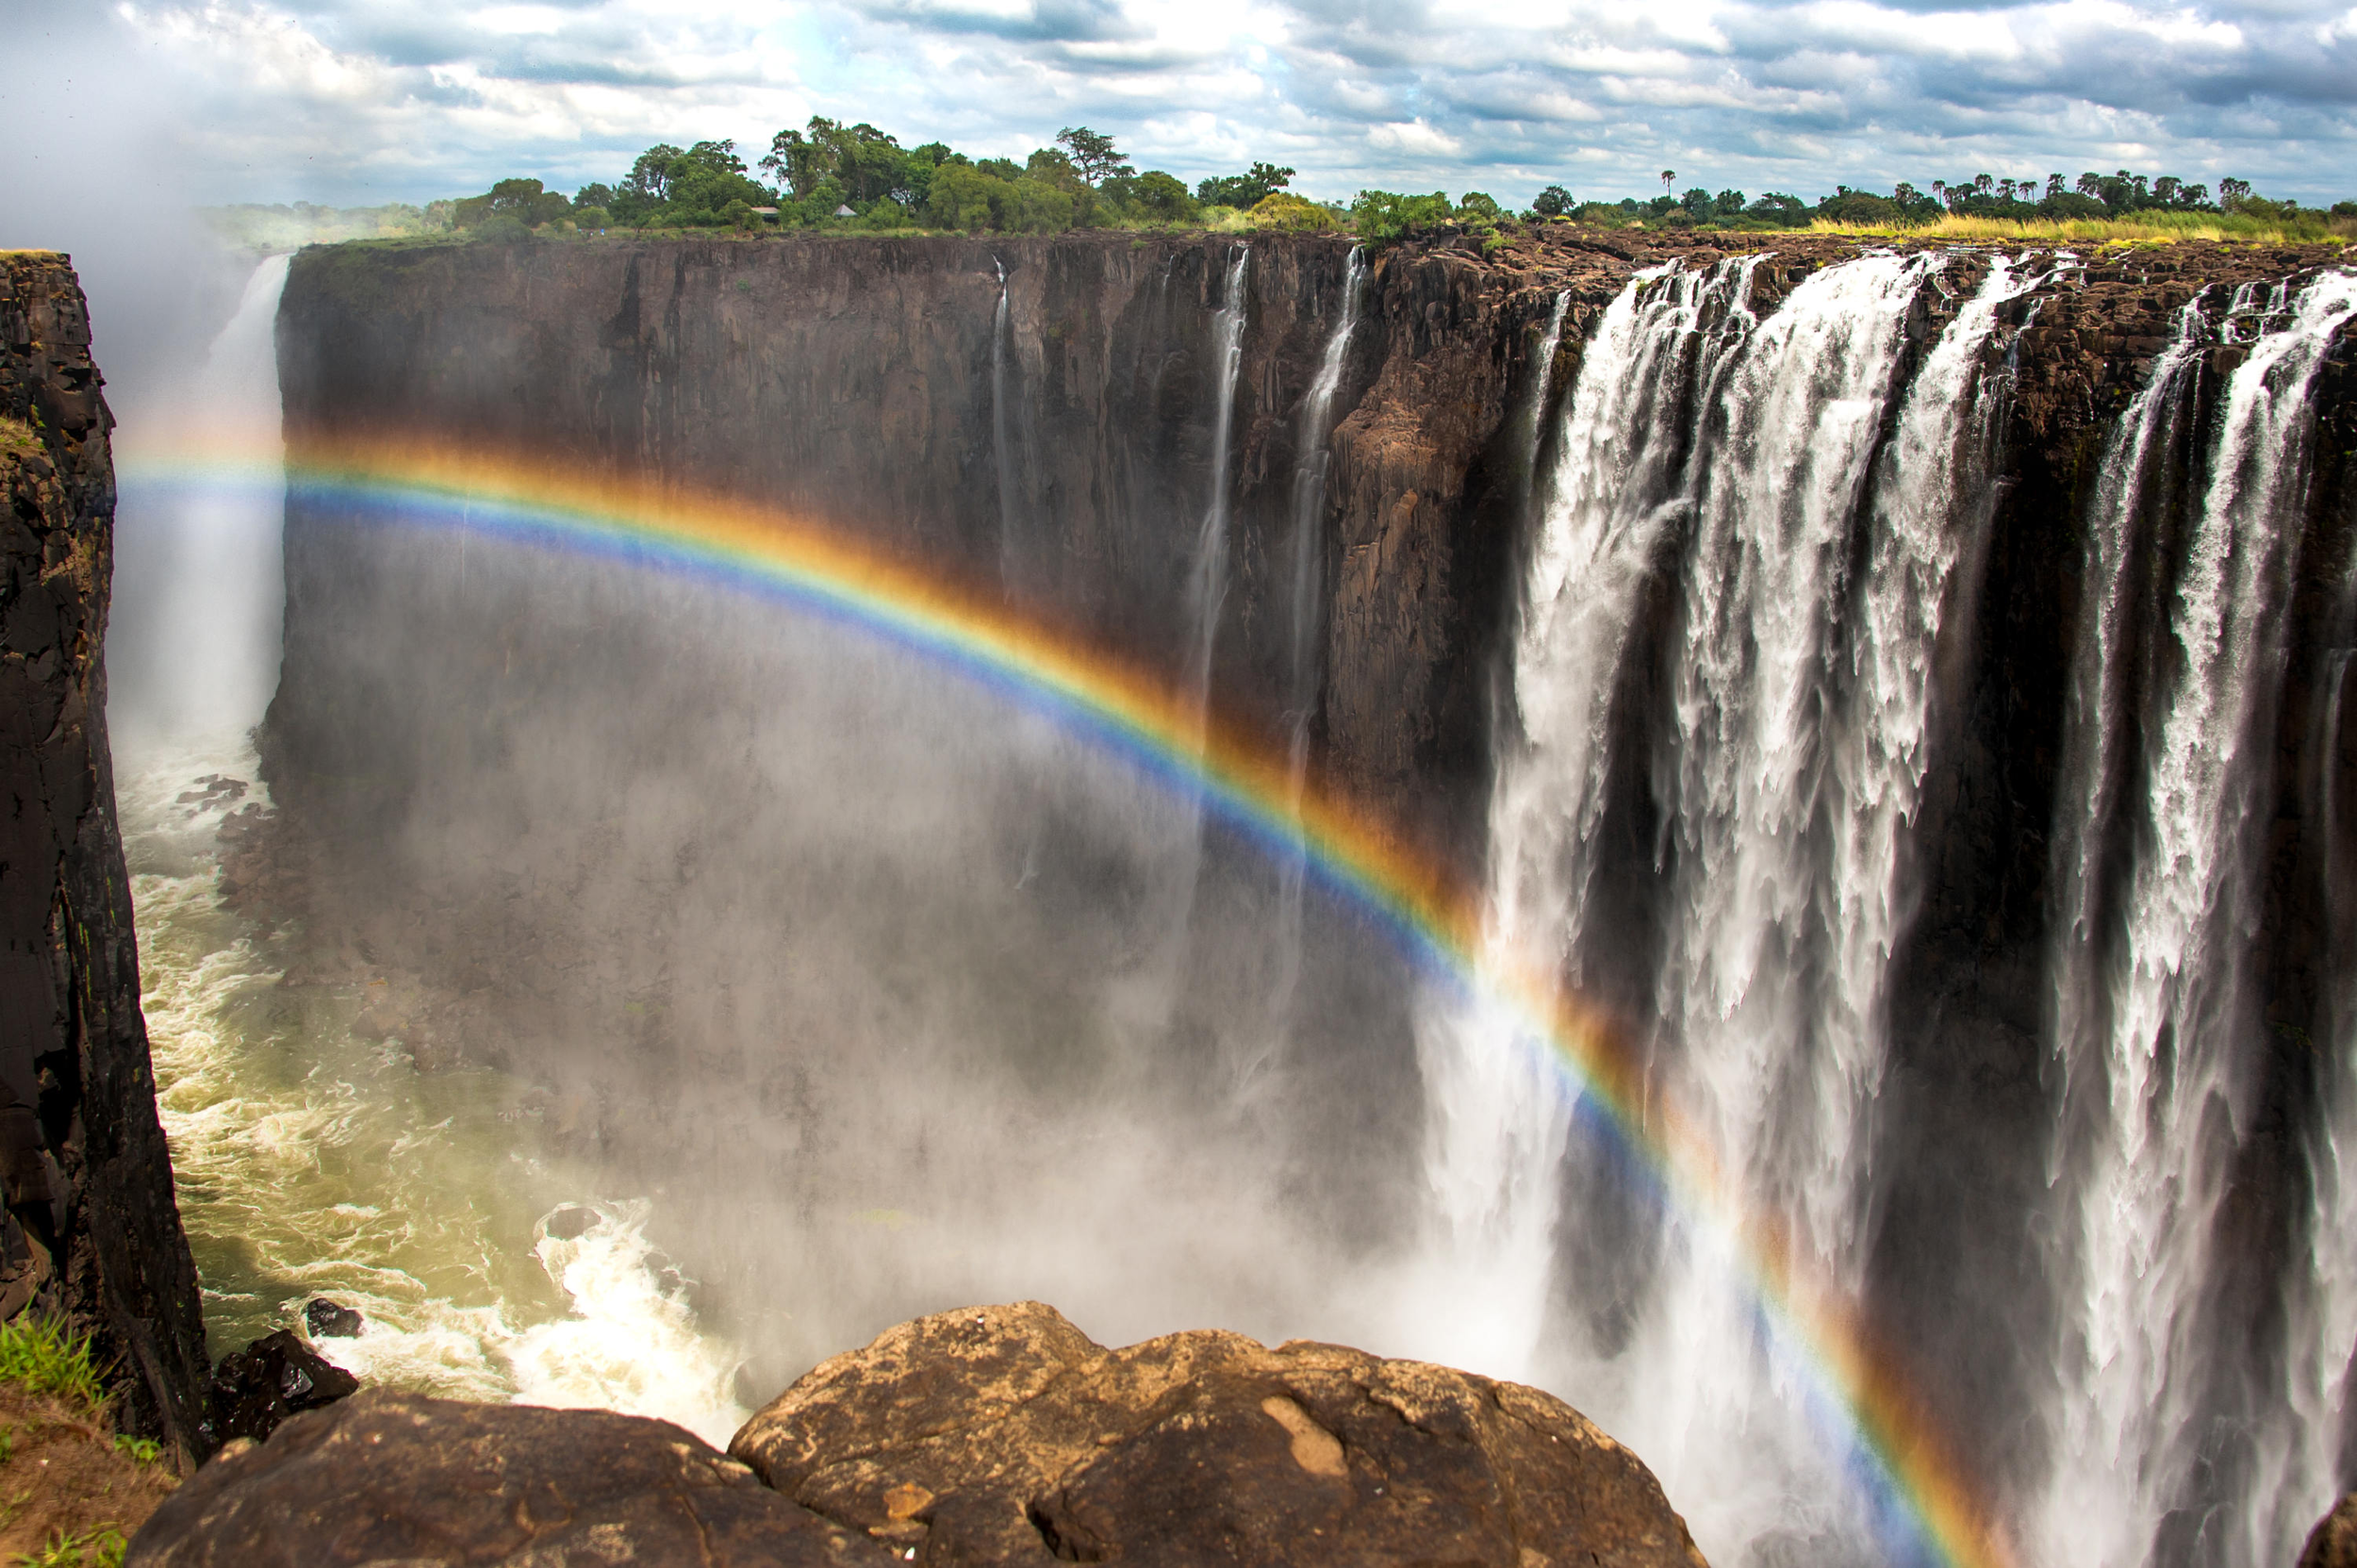 Stories Behind the Photos   Sharing live today at Noon EST on IG: ronlouisphotos  -  I took a morning hike along Victoria Falls in Zimbabwe and stumbled upon this amazing place. Tune in to hear more about it and how I photographed one of the worlds majestic waterfalls.  -  Titled: Over the Rainbow  https://etsy.me/2G6FYz3-  #overtherainbow #etsy #art #photography #landscapescenery #horizontal #rainbow #victoriafalls #zimbabwe #zambia #waterfalls #hiking #morning #cliffs #majesticfalls #storiesbehindthephotos #rlpurban #ronlouisphotos #ronlouisfoster